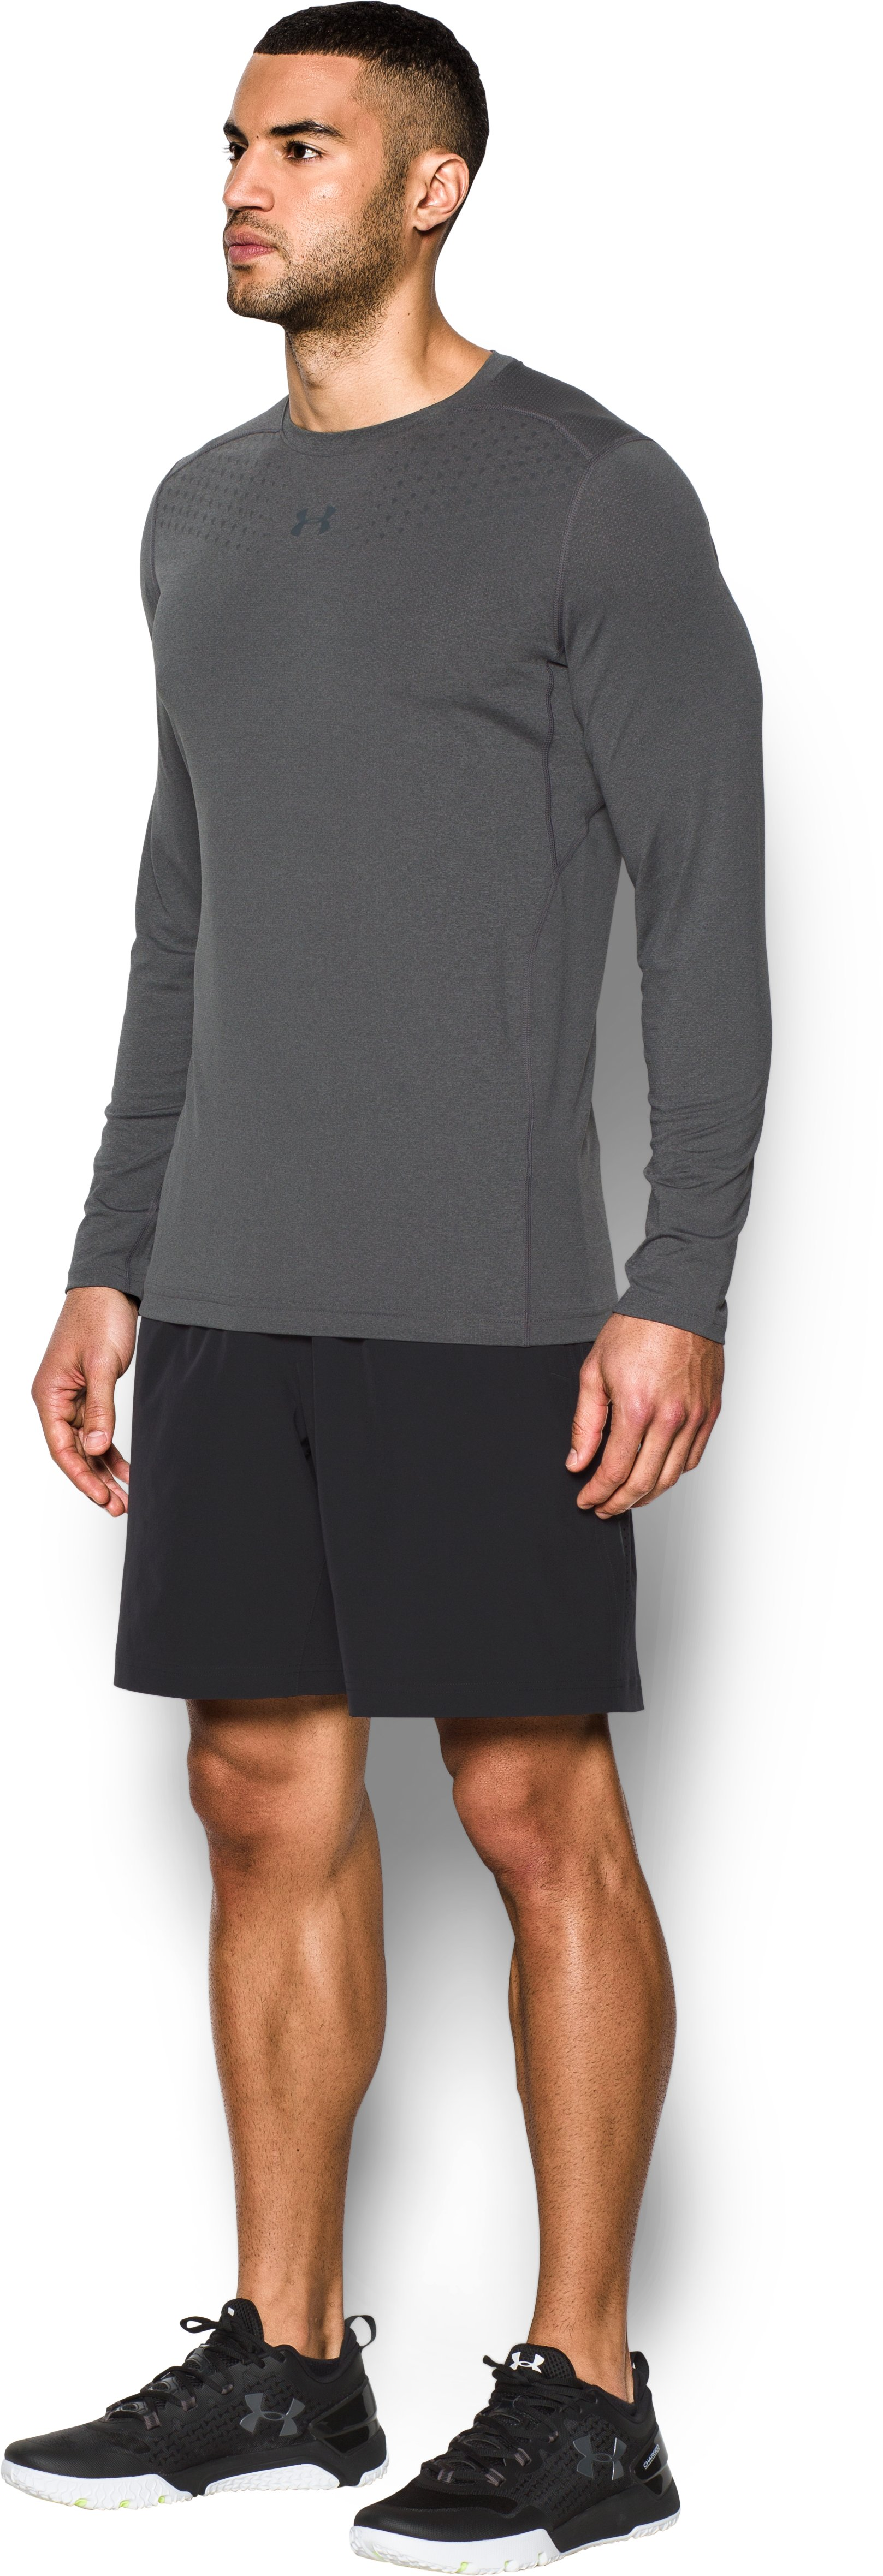 Men's HeatGear® CoolSwitch Twist Fitted Long Sleeve, Carbon Heather,